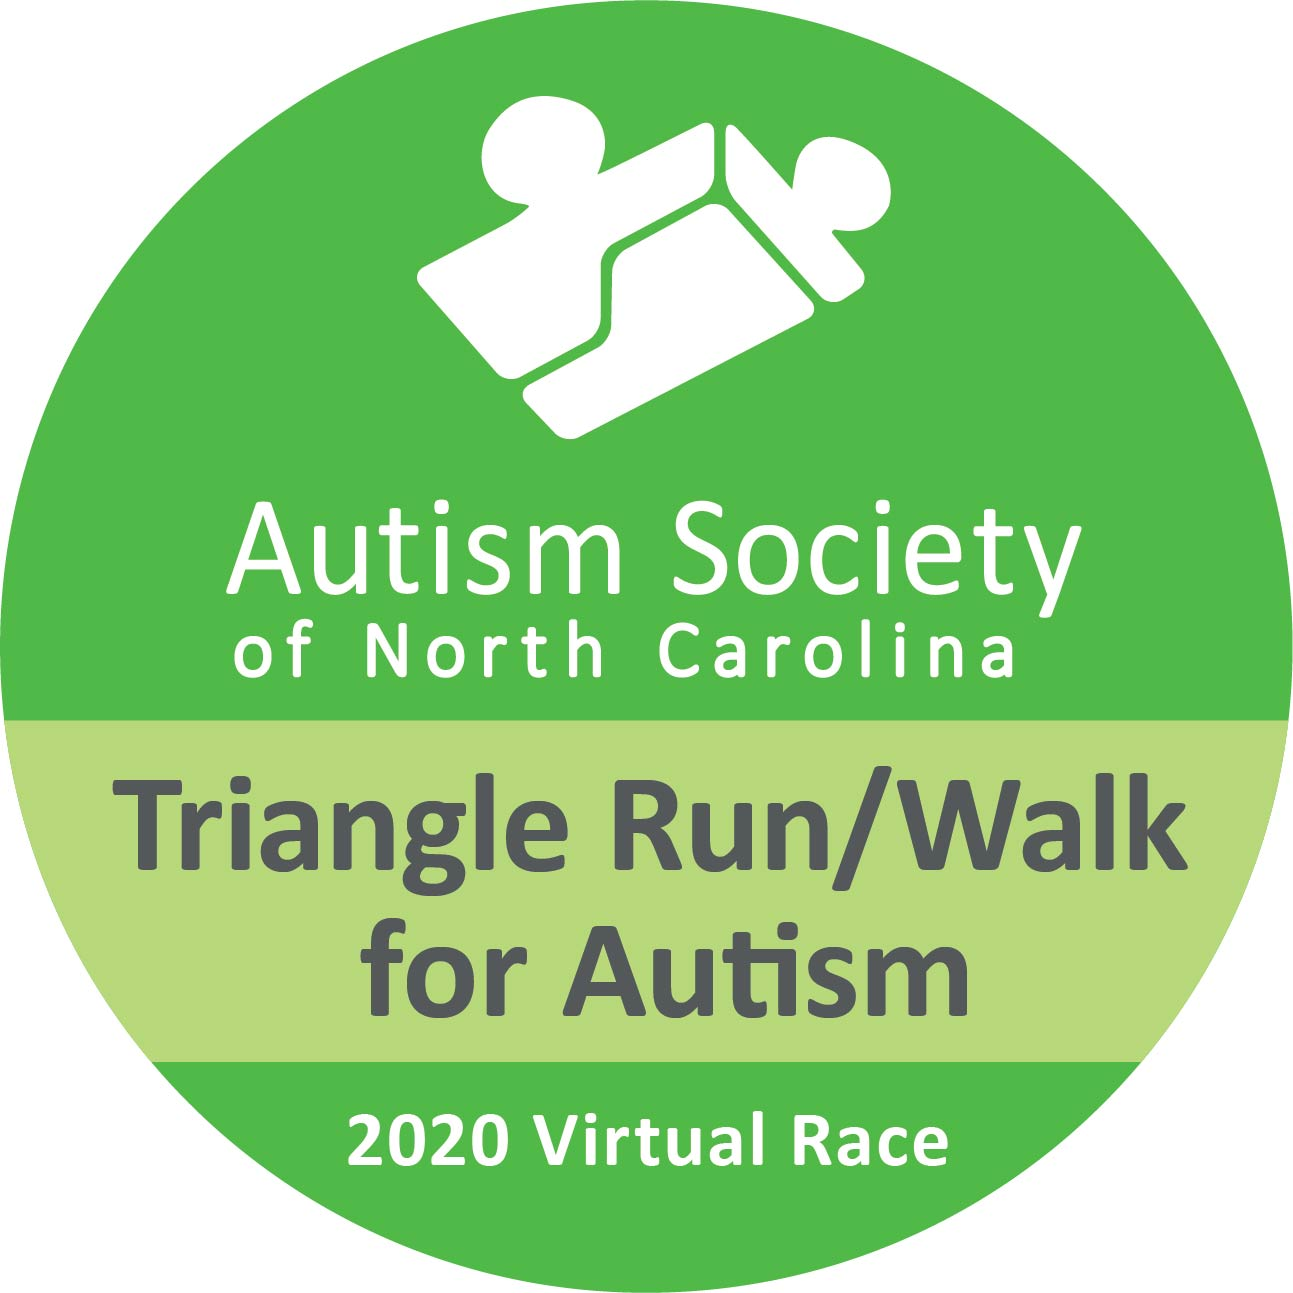 Triangle Run/Walk for Autism